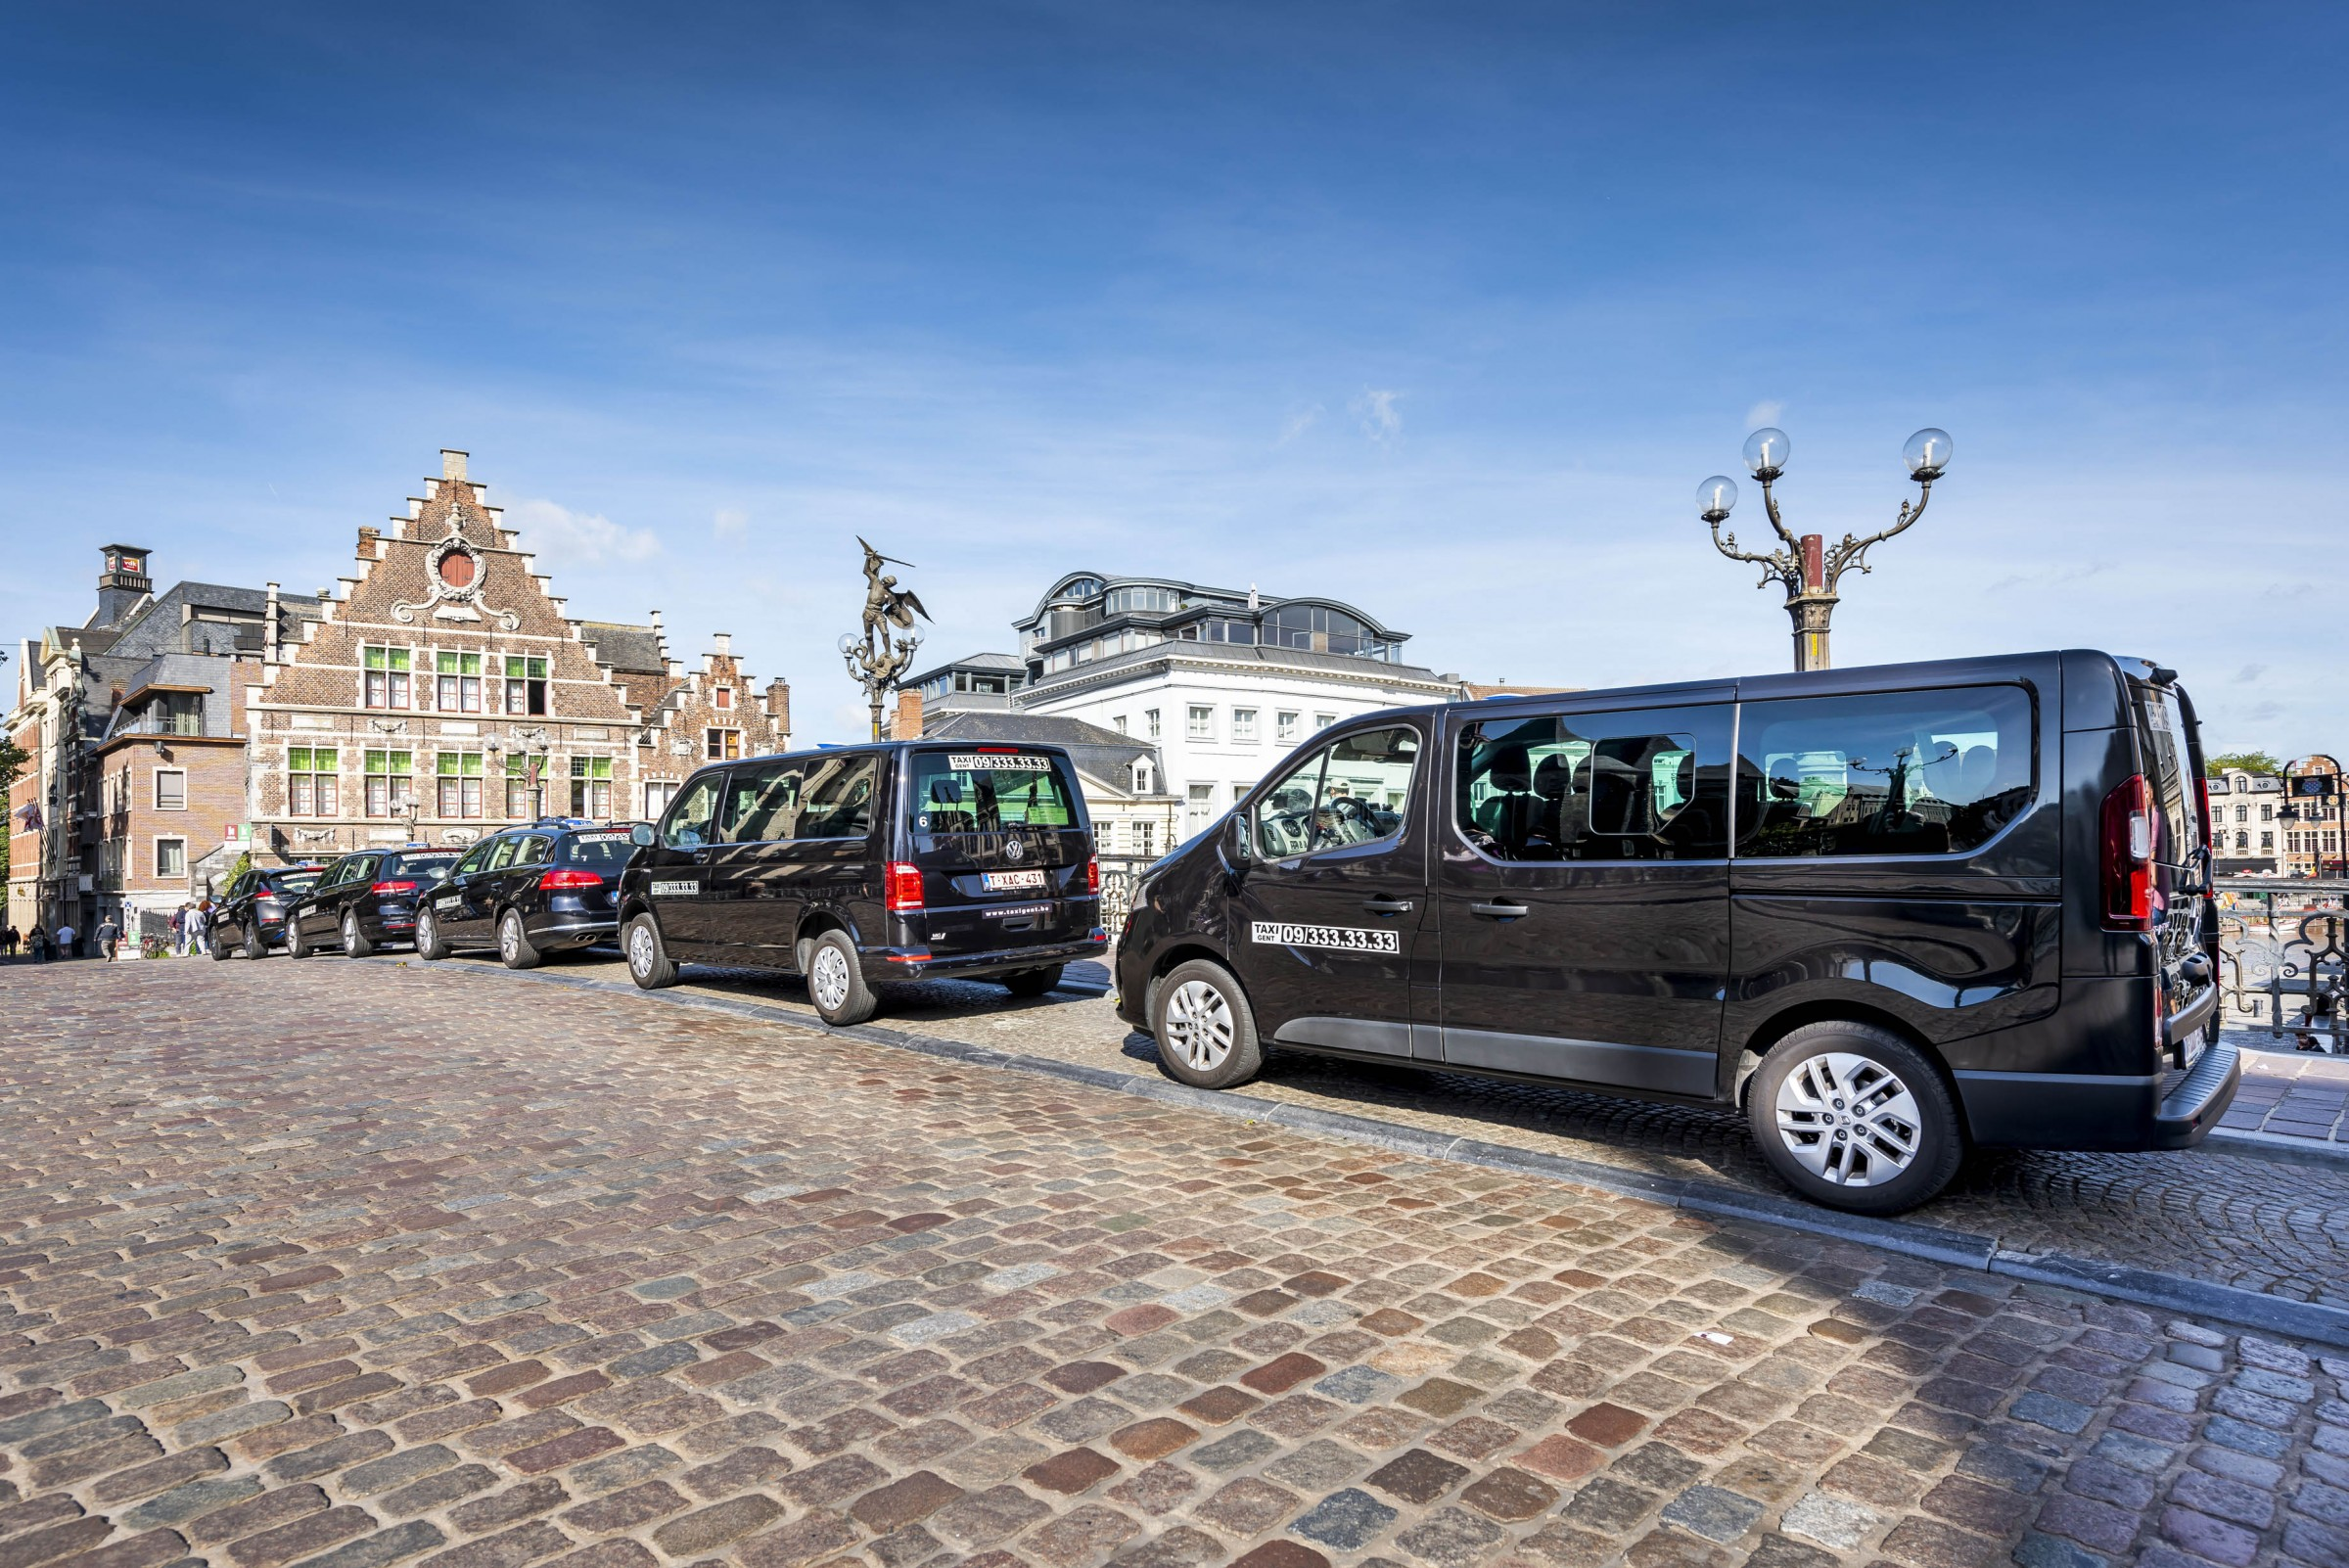 Taxi's-Gent-12.jpg